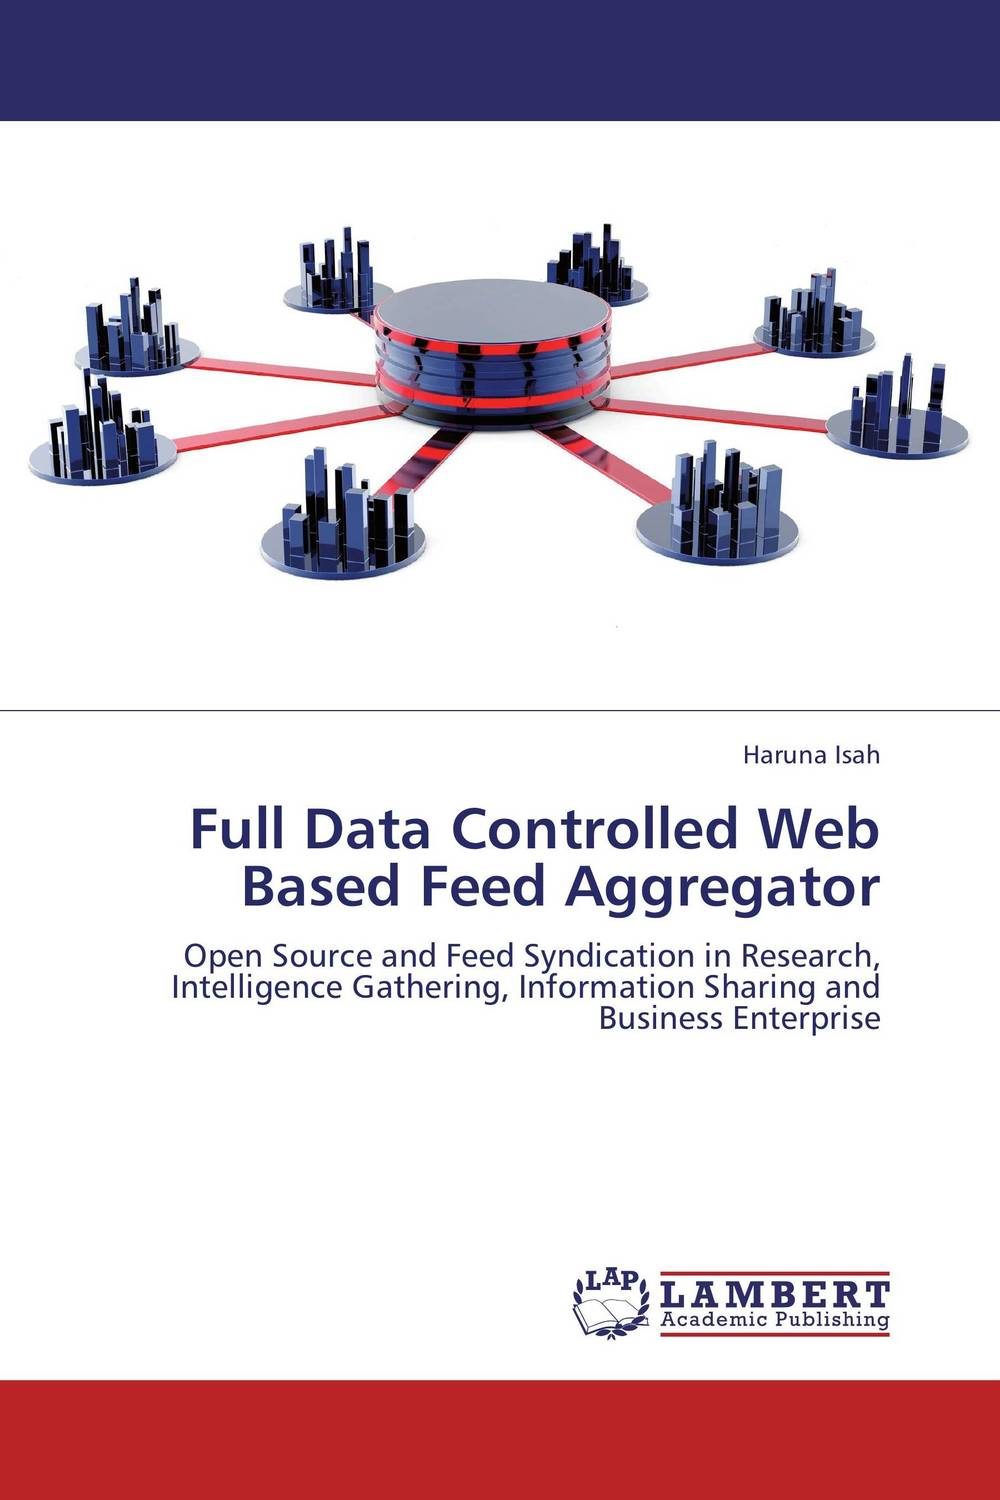 Full Data Controlled Web Based Feed Aggregator wordpress